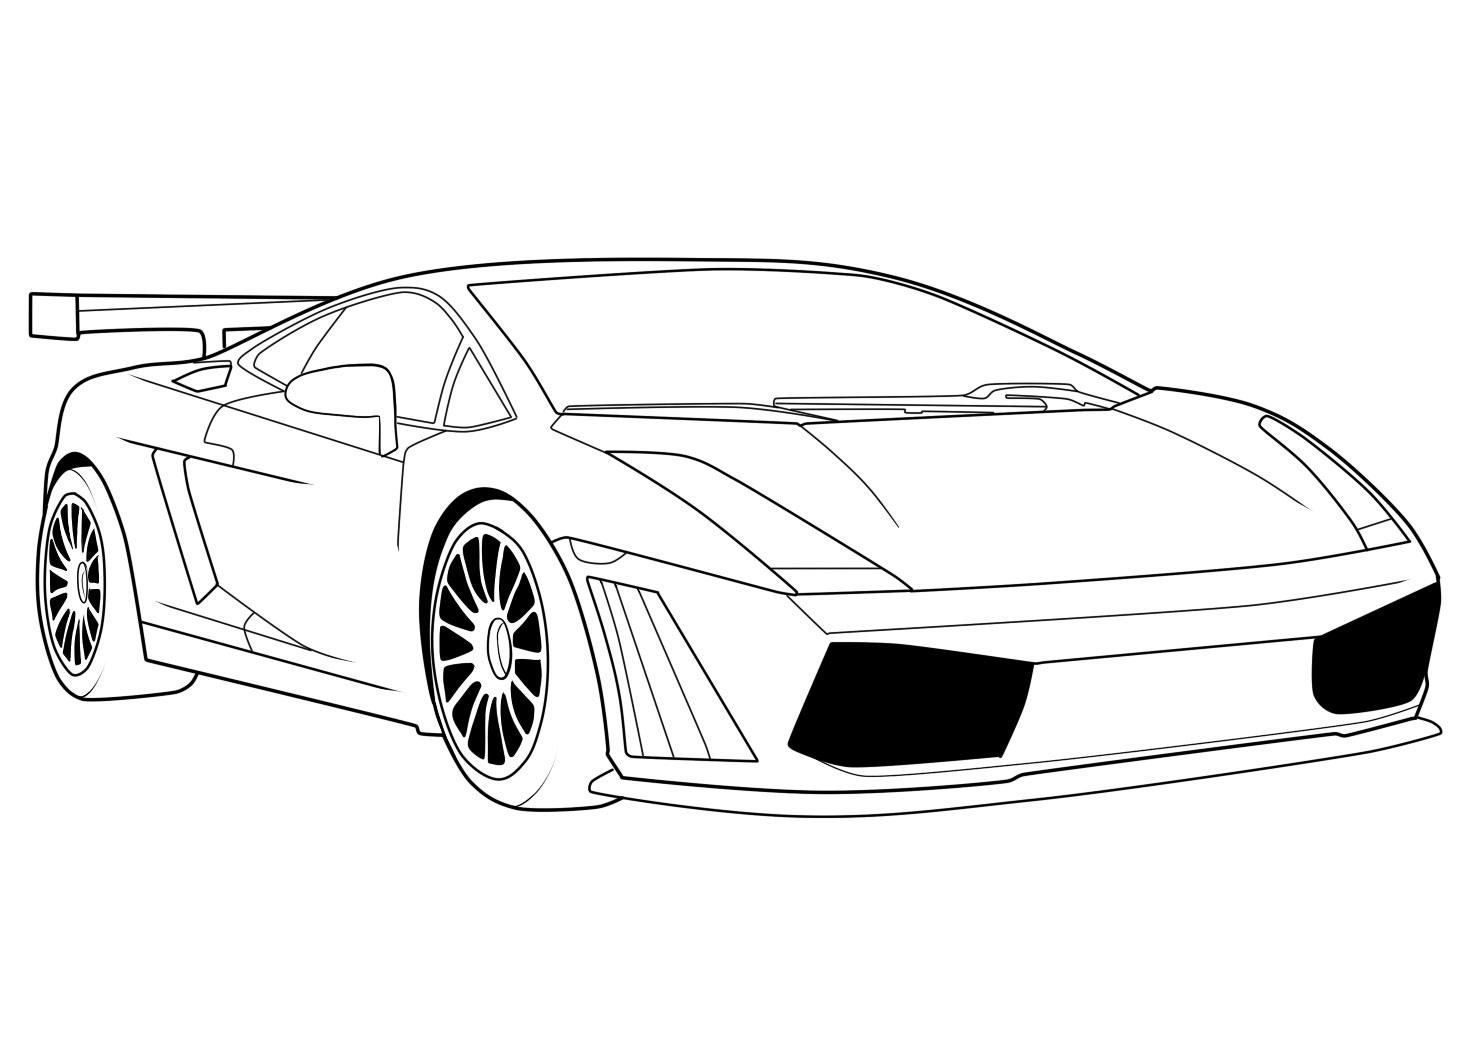 car picture to color 4 disney cars free printable coloring pages color to picture car